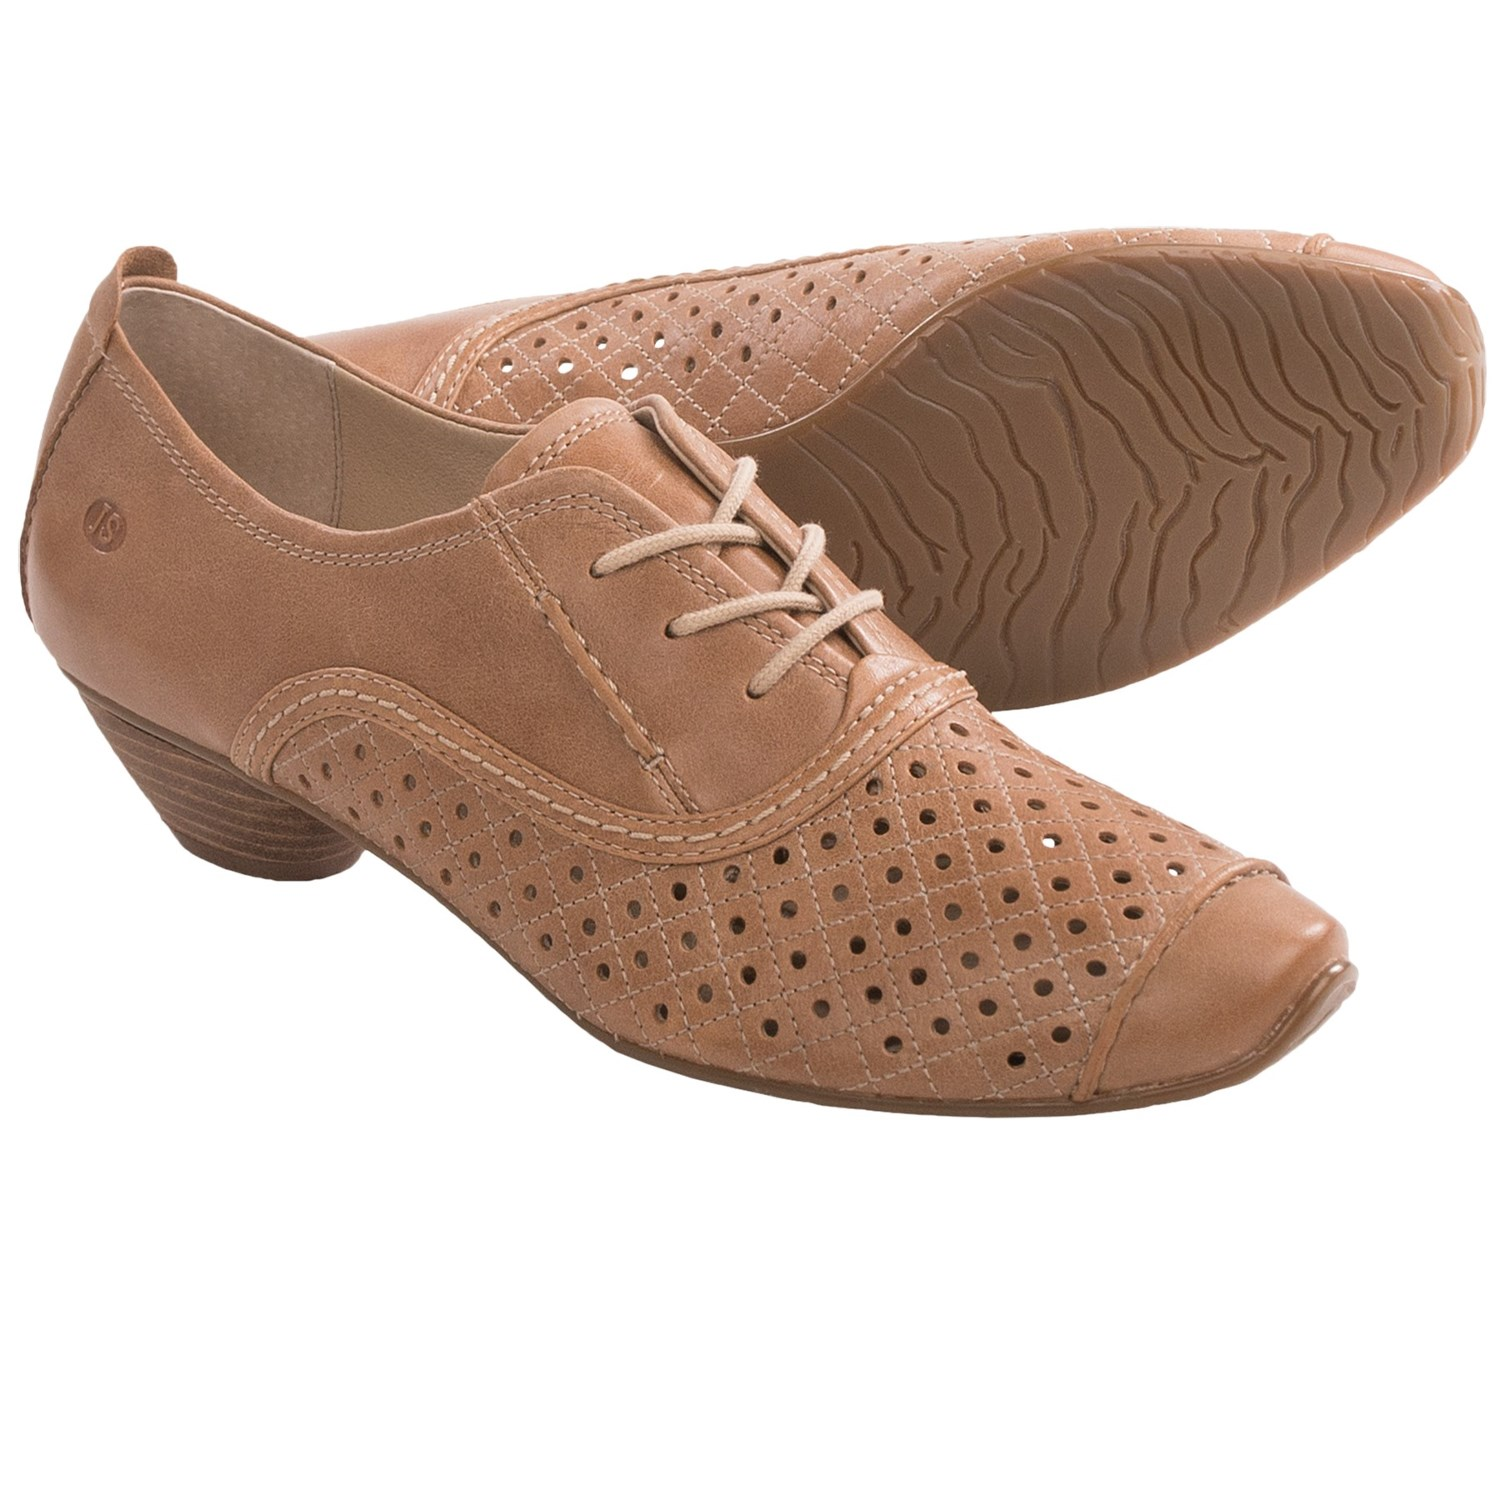 josef seibel tina 305 shoes oxfords leather for